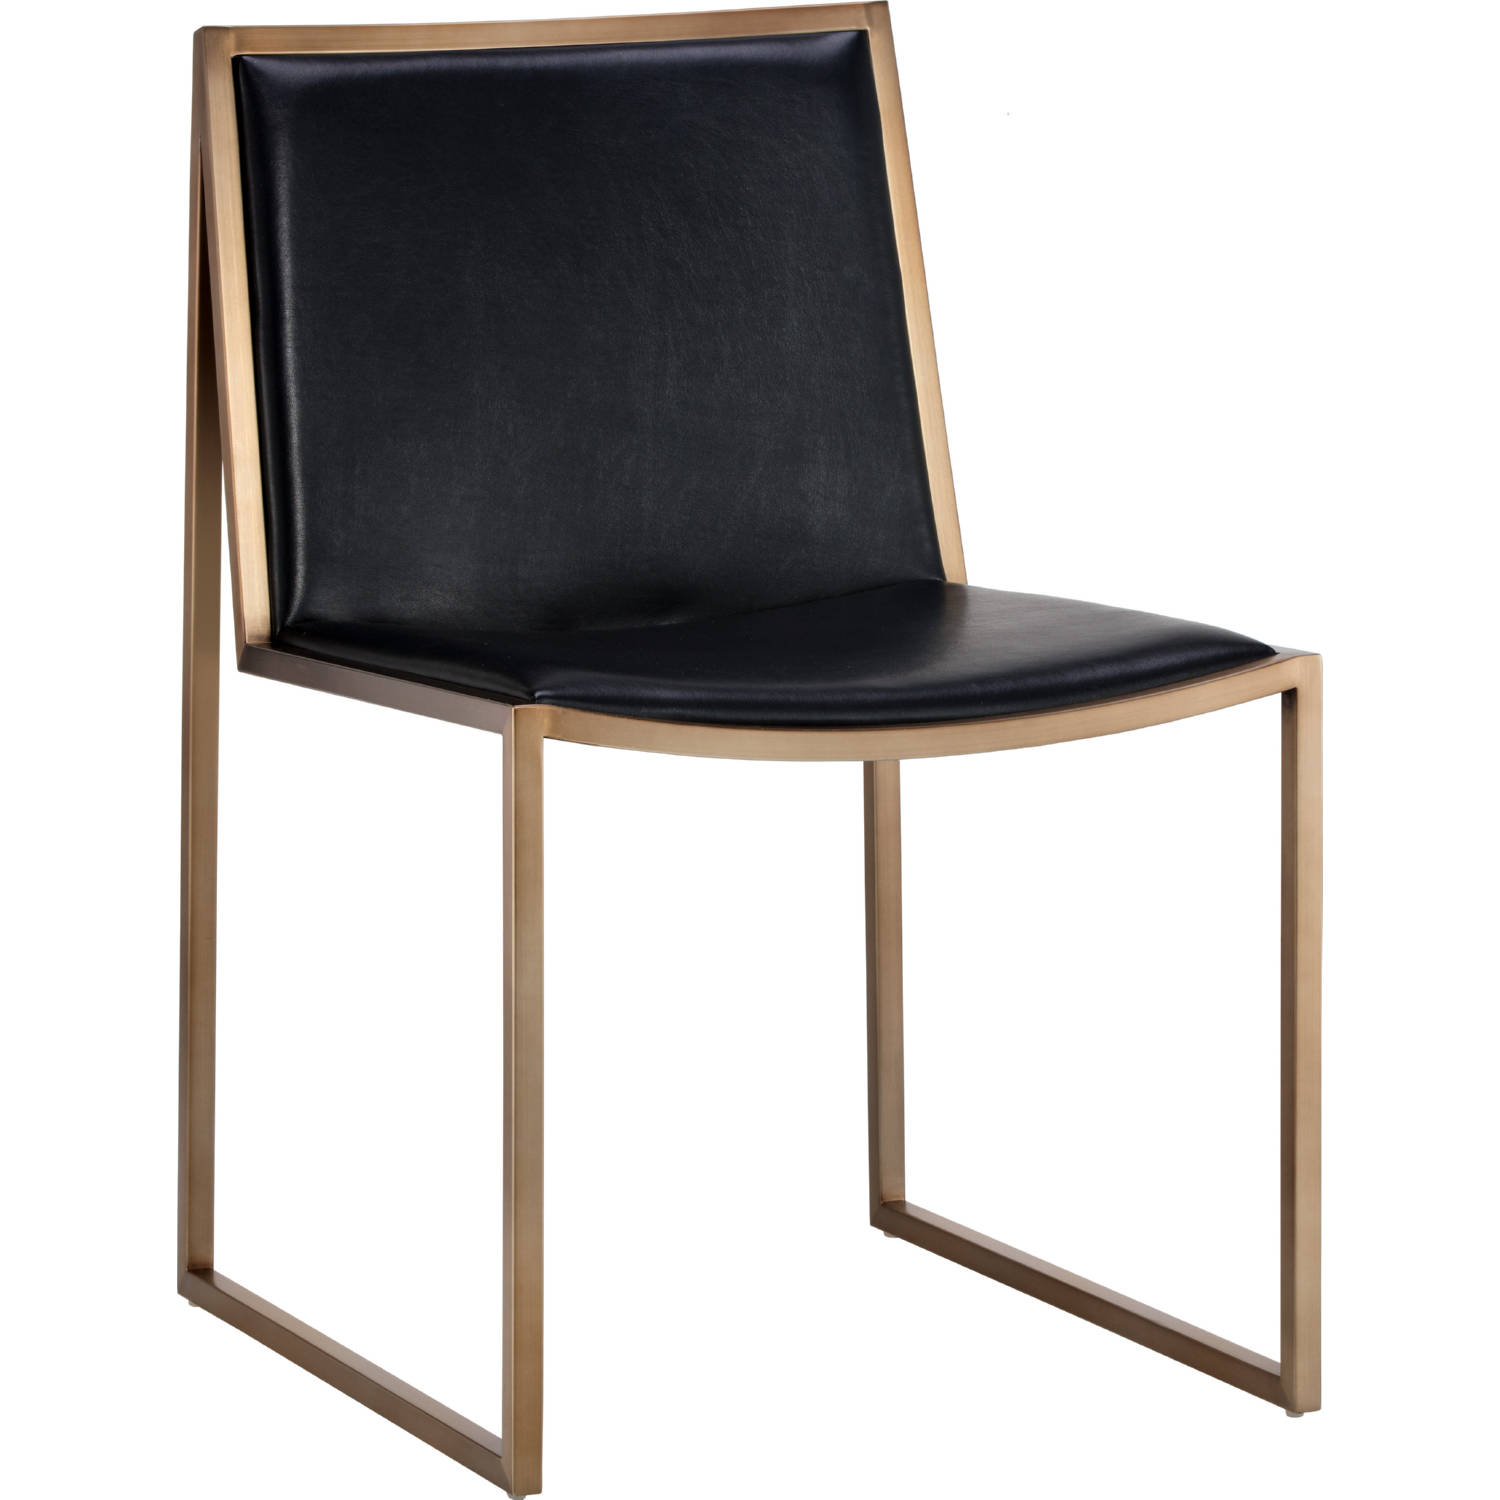 Sunpan 104711 Blair Dining Chair In Black Bonded Leather Antique Brass Set Of 2